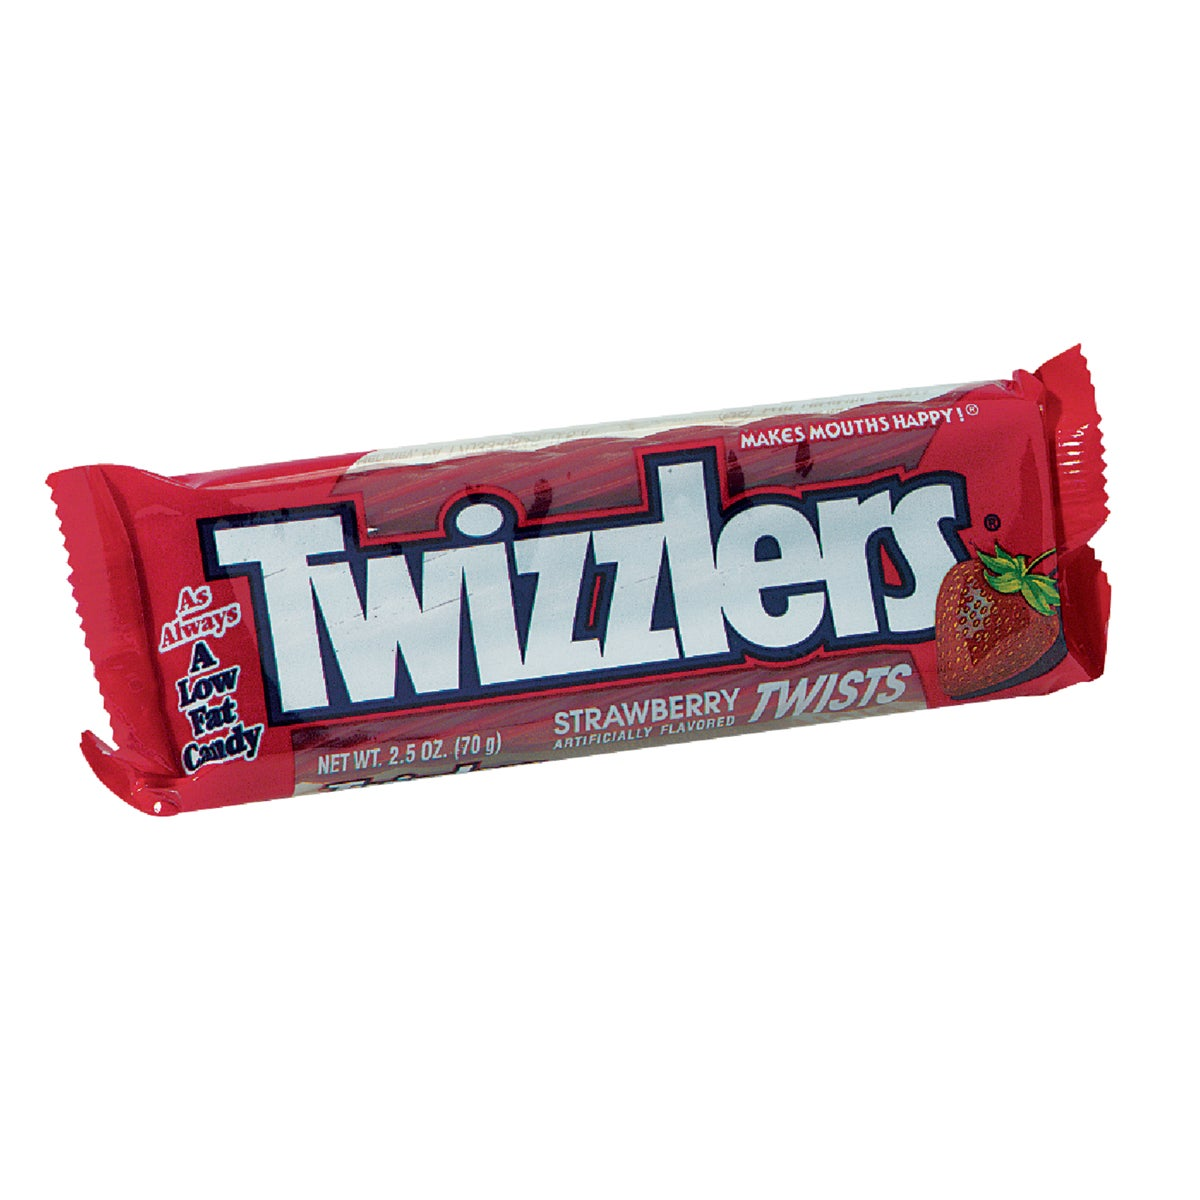 Liberty Distribution 2.5OZ STRAWBERY TWIZZLER 1161